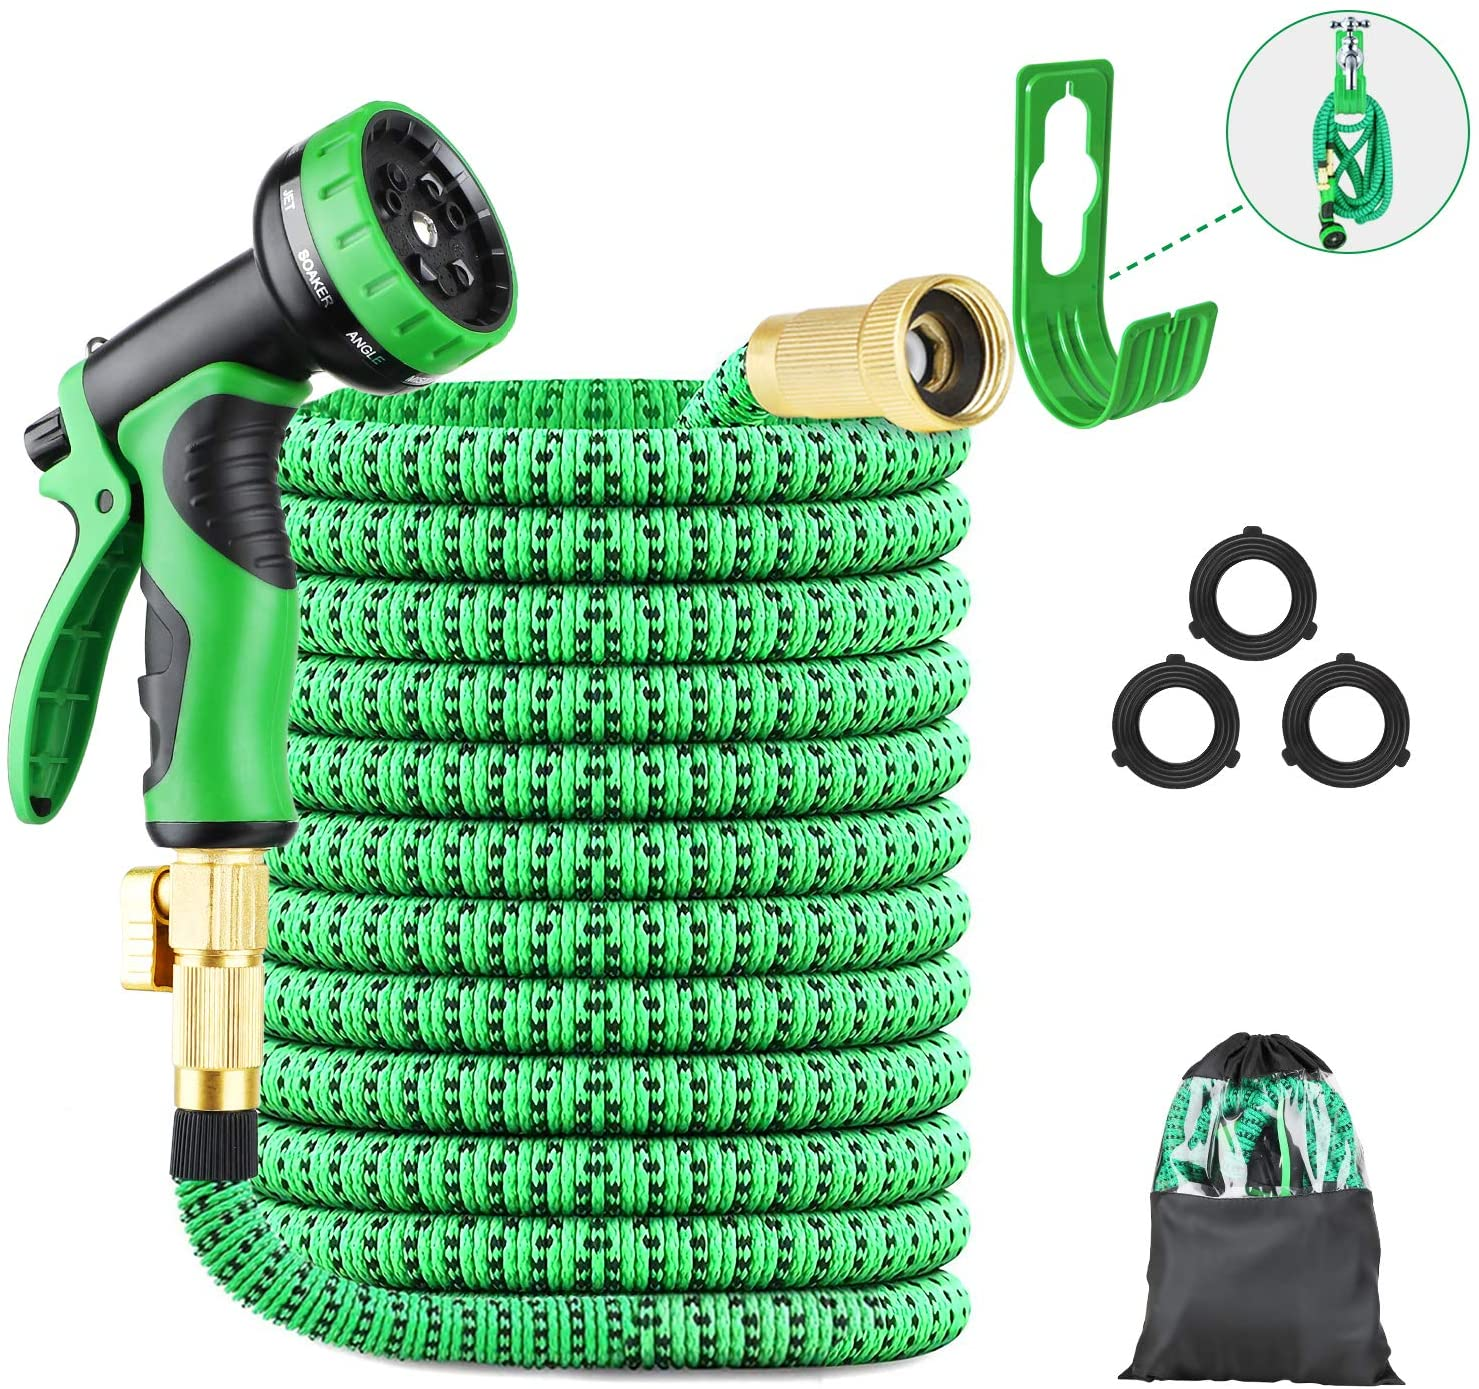 LANDTAIX EXPANDABLE GARDEN HOSE WATER HOSE 50FT GARDEN HOSE DURABLE LEAKPROOF LIGHTWEIGHT RETRACTABLE HOSE HOLDER & 9 FUNCTION NOZZLE DURABLE SOLID BRASS FITTINGS GREAT FOR WATERING WASHING